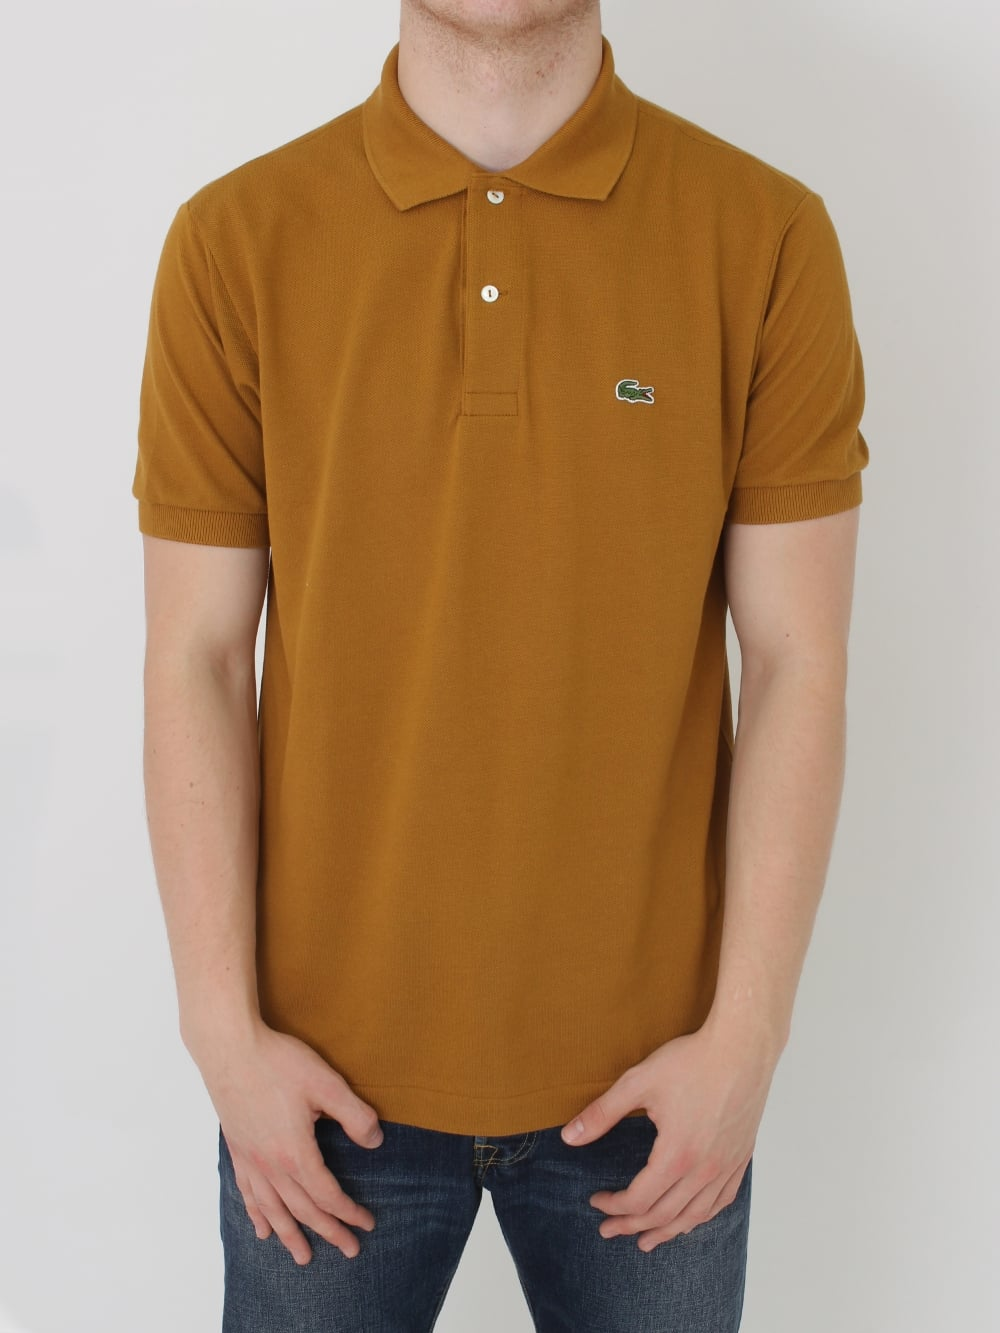 6759f419c Lacoste L1212 Classic Pique Polo in Renaissance - Northern Threads